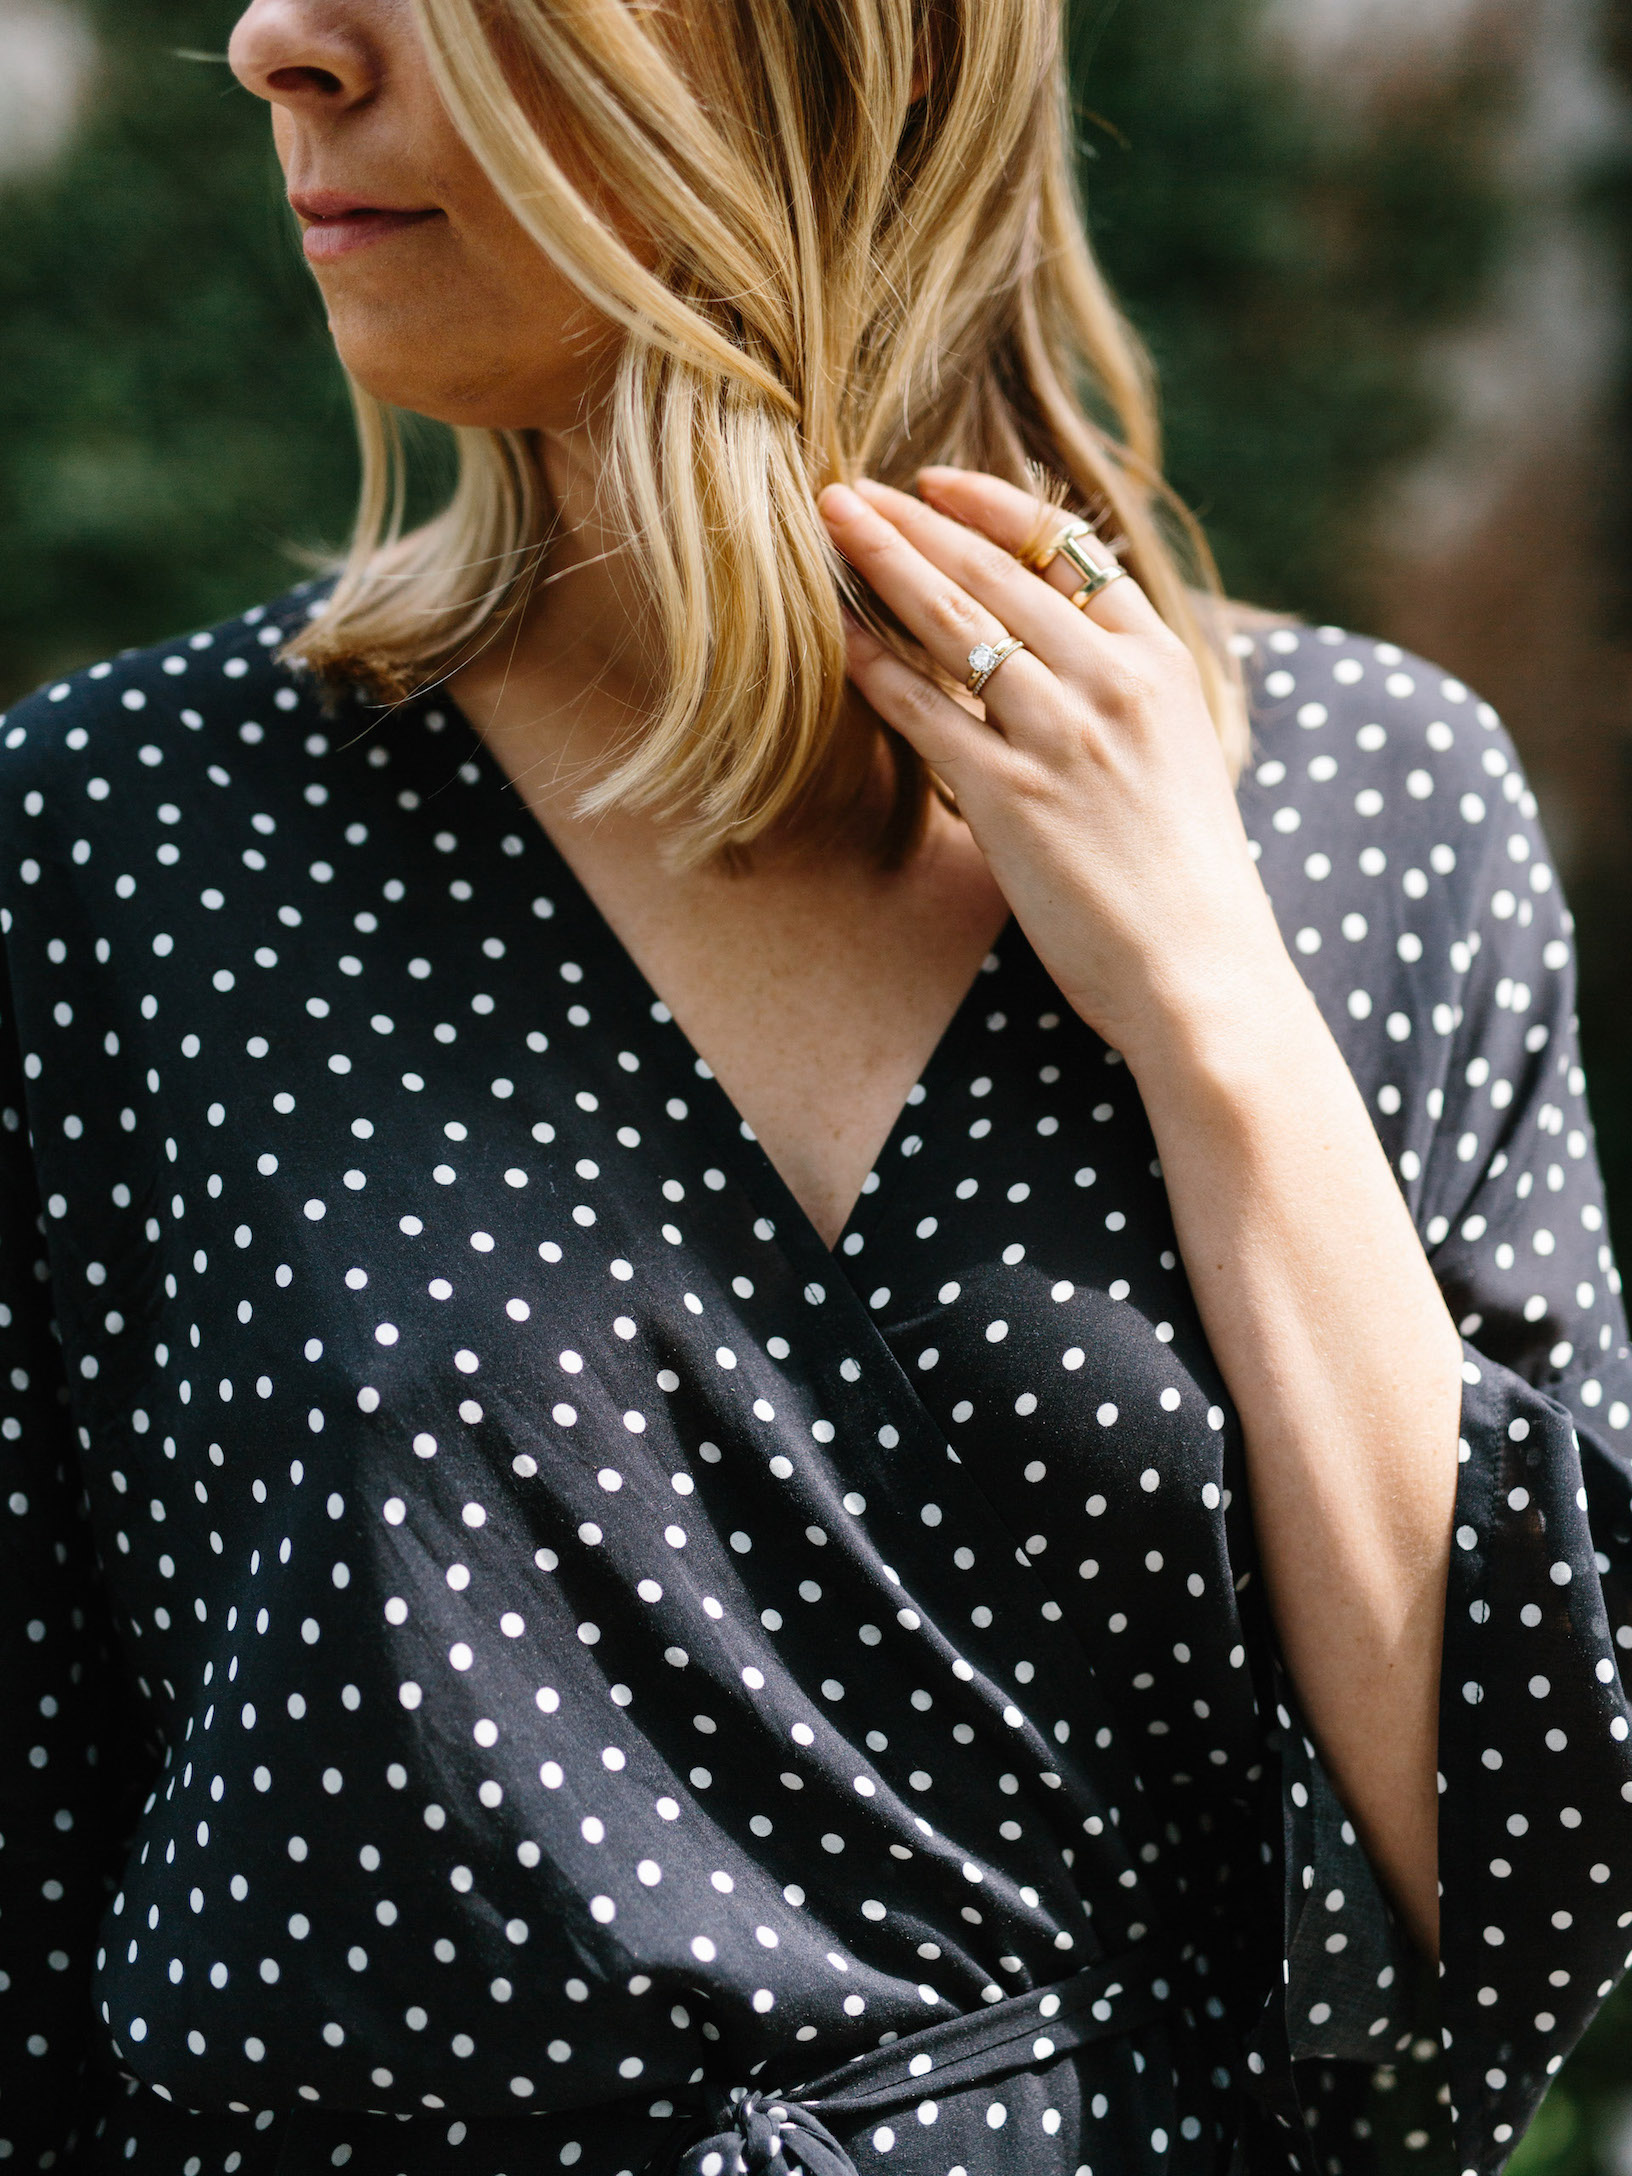 Kimono-inspired polka dot wrap dress // A Week Of Summertime Minimalist Outfits With Ava Darnell, Founder Of Slumlove Sweater Company on The Good Trade